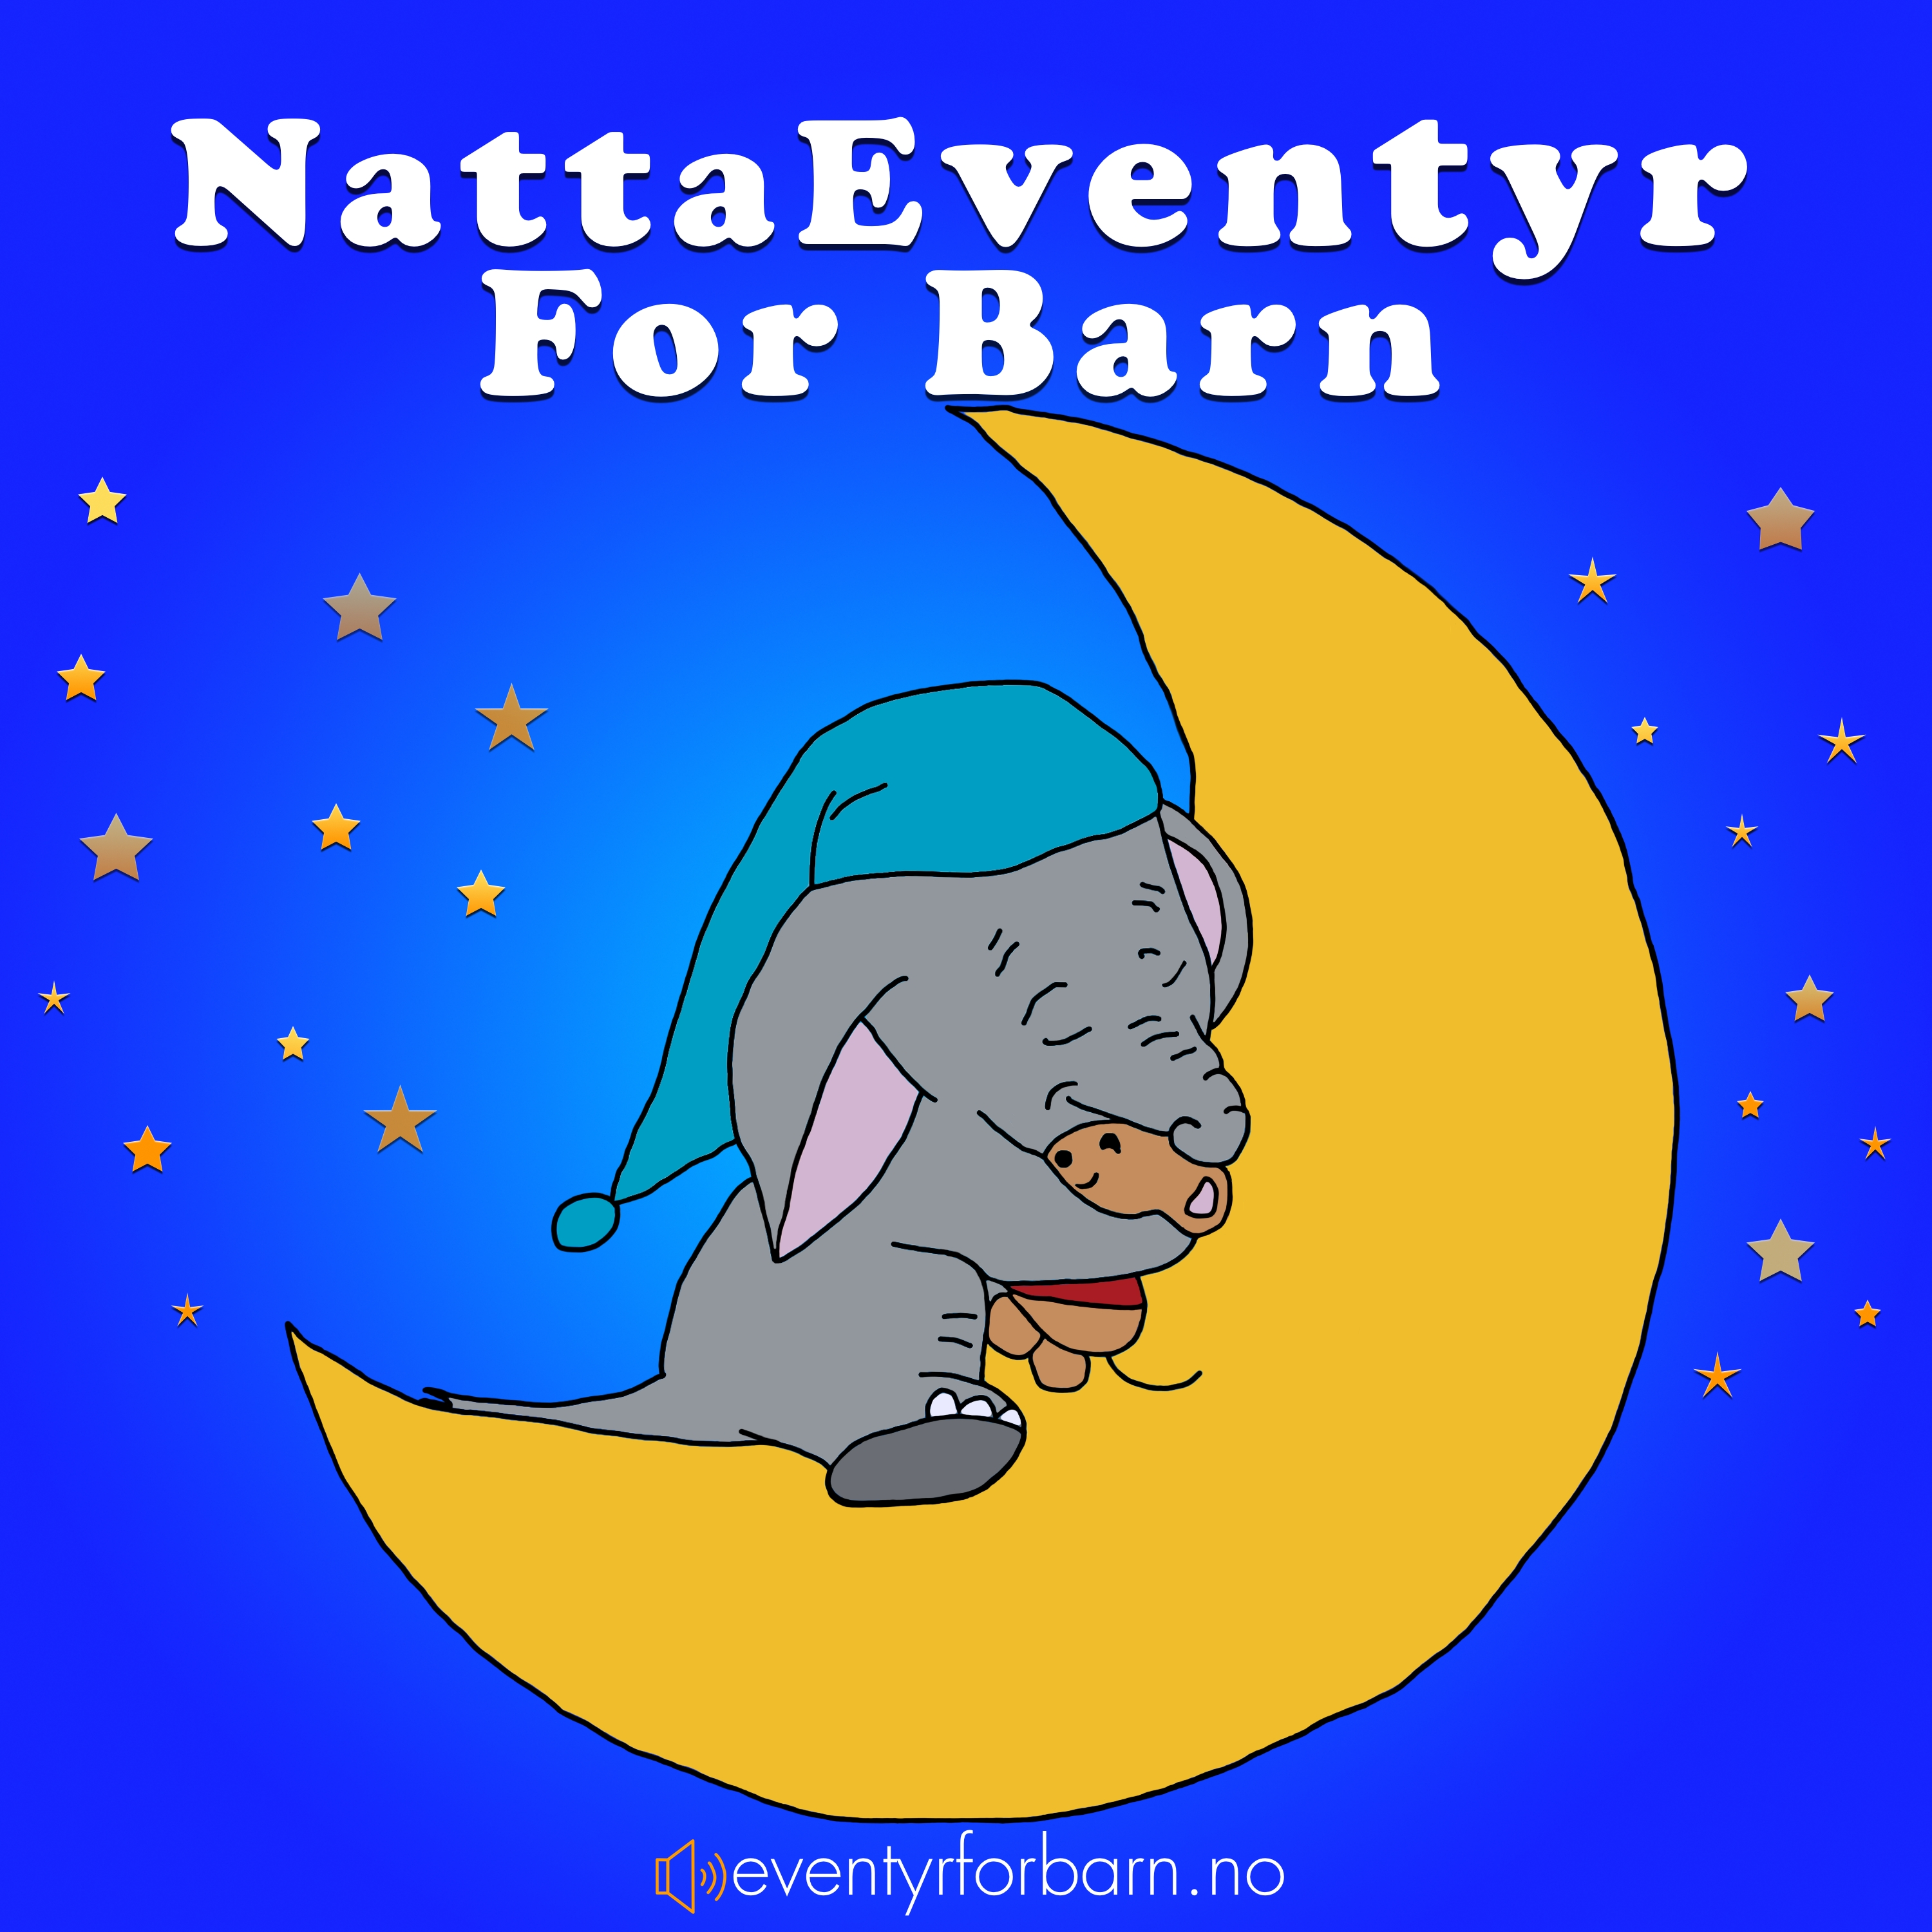 Nattaeventyr For Barn